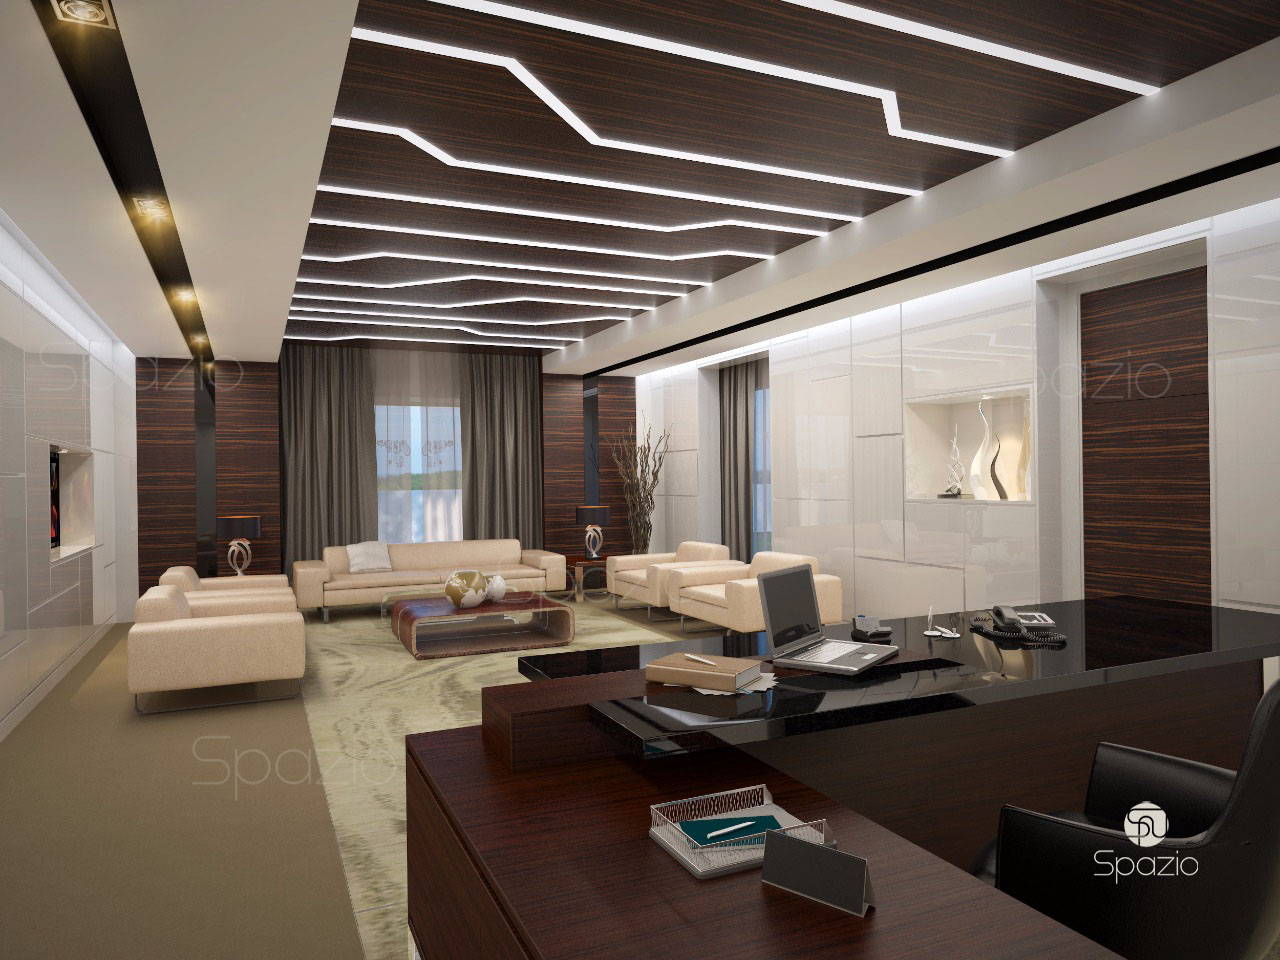 Office interior design company in dubai spazio for Office interior design pictures